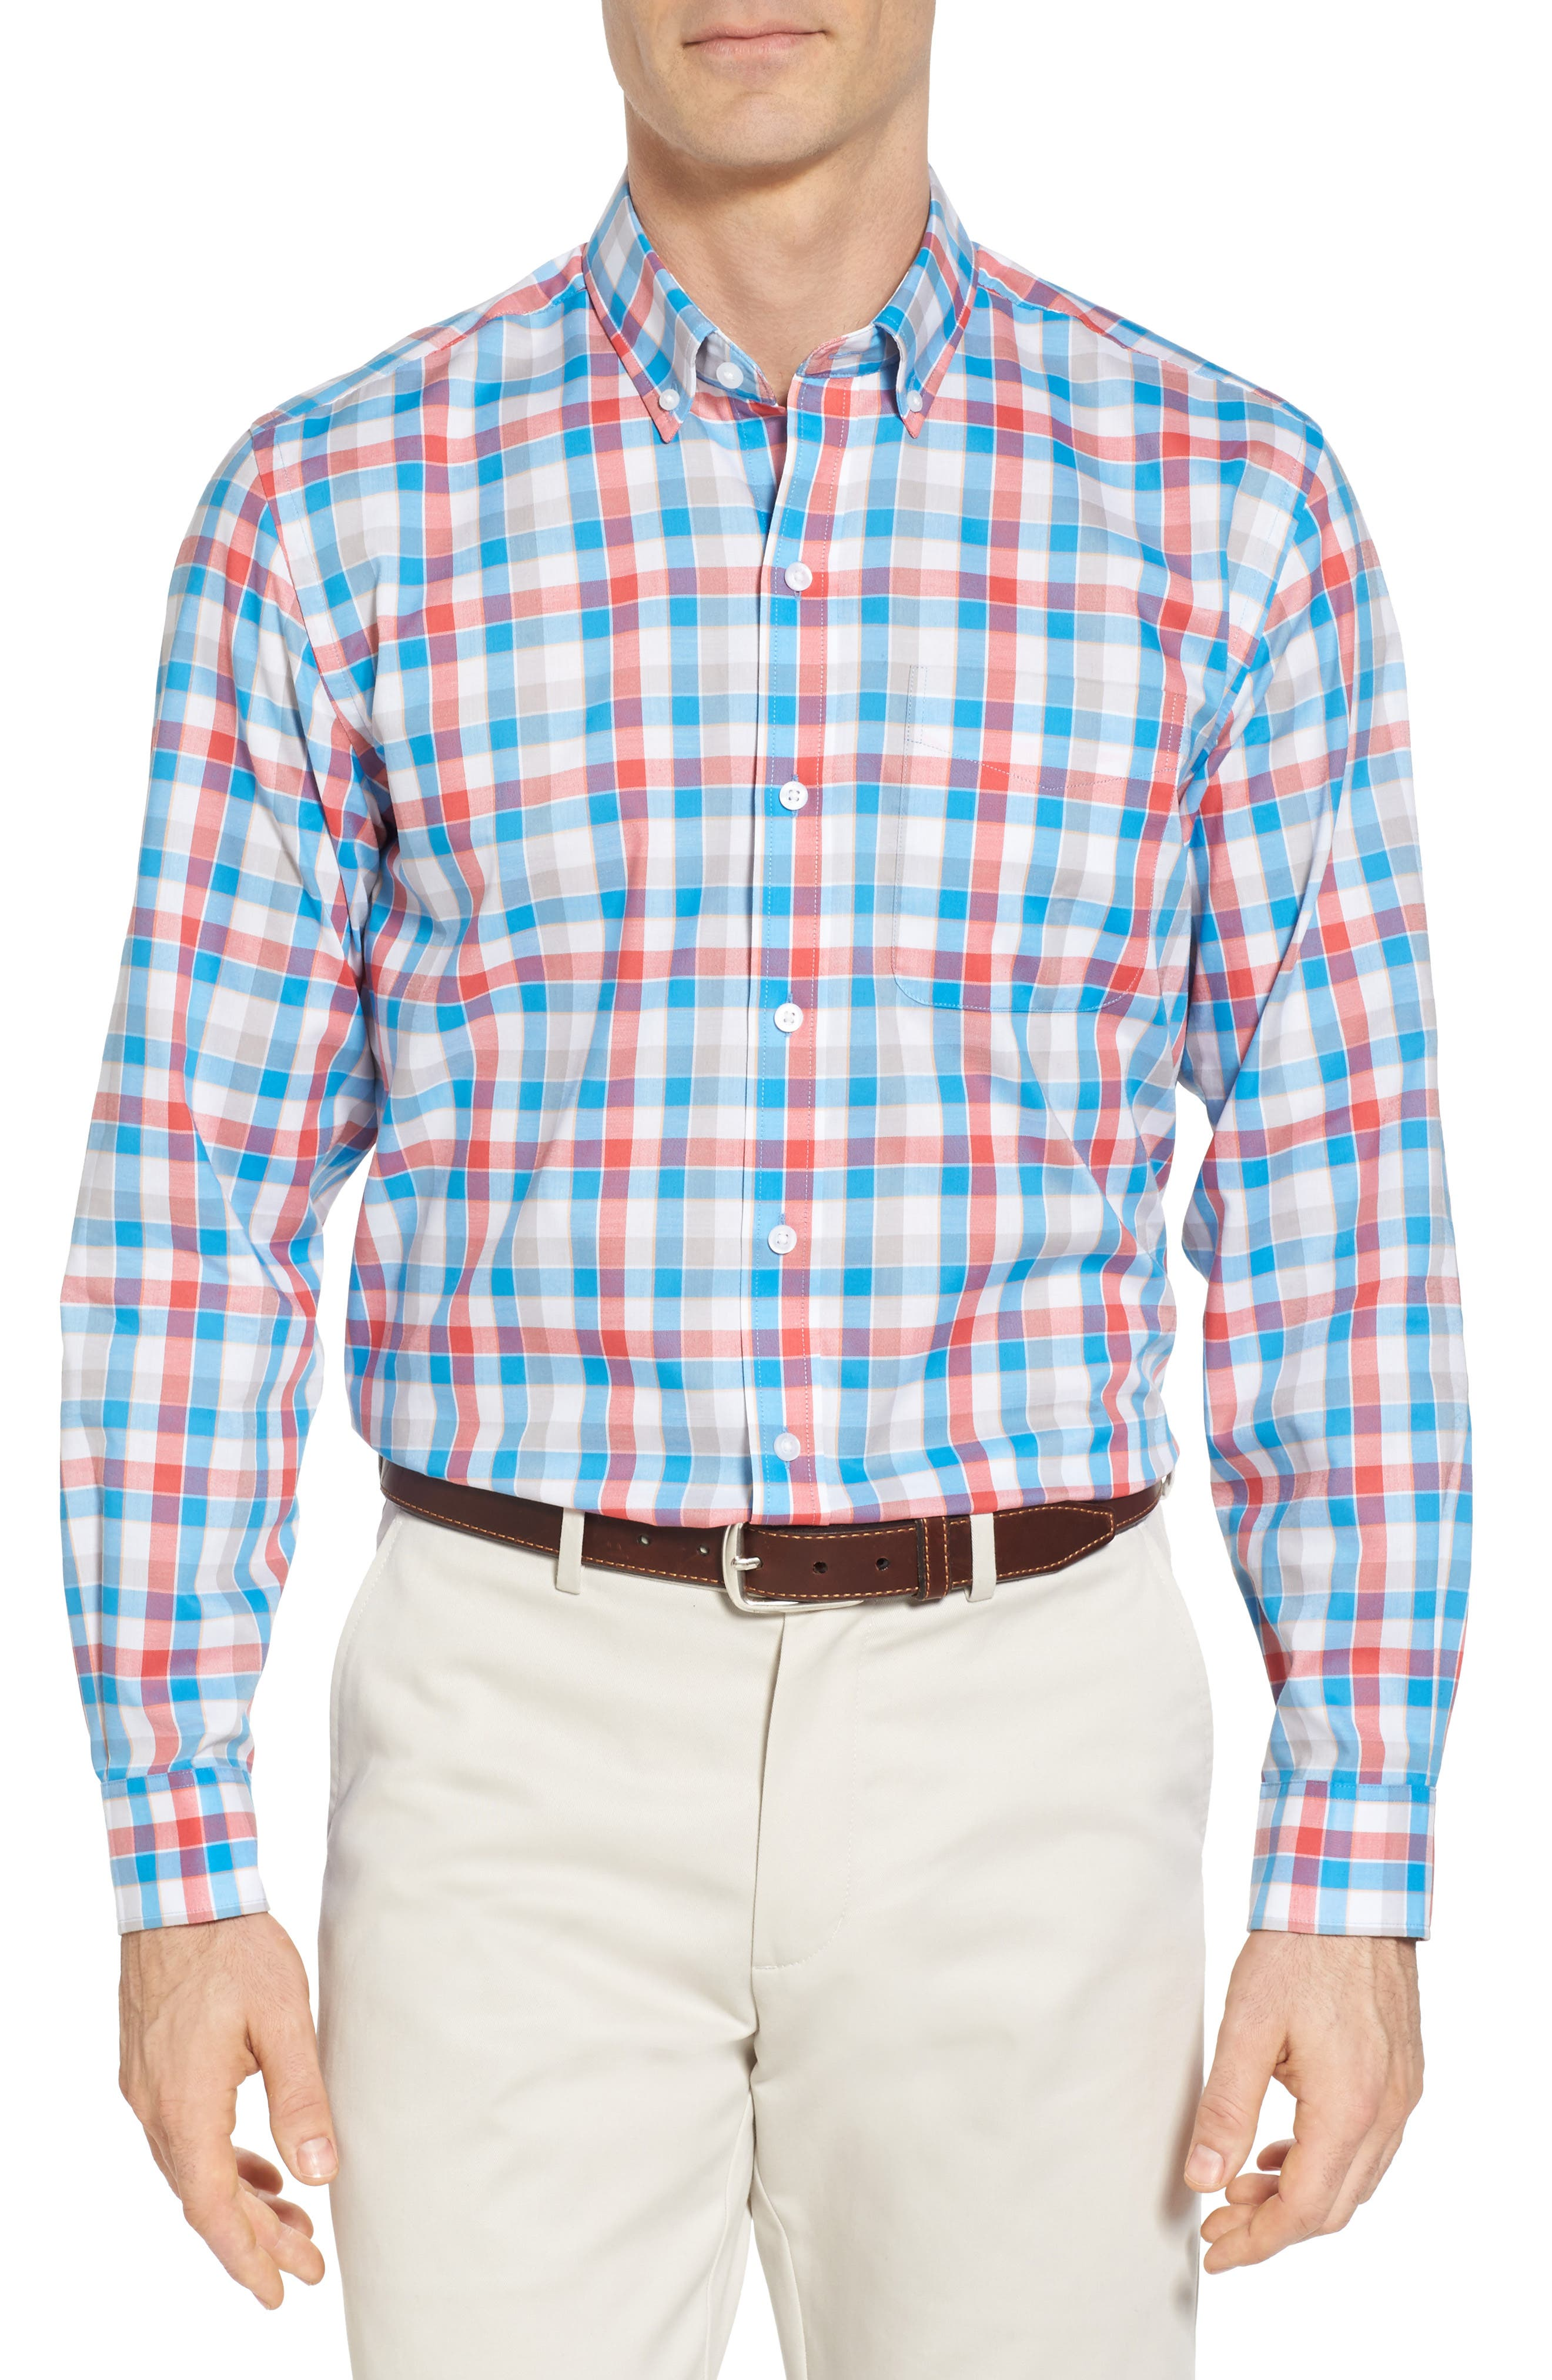 Alternate Image 1 Selected - Cutter & Buck Dylan Easy Care Plaid Sport Shirt